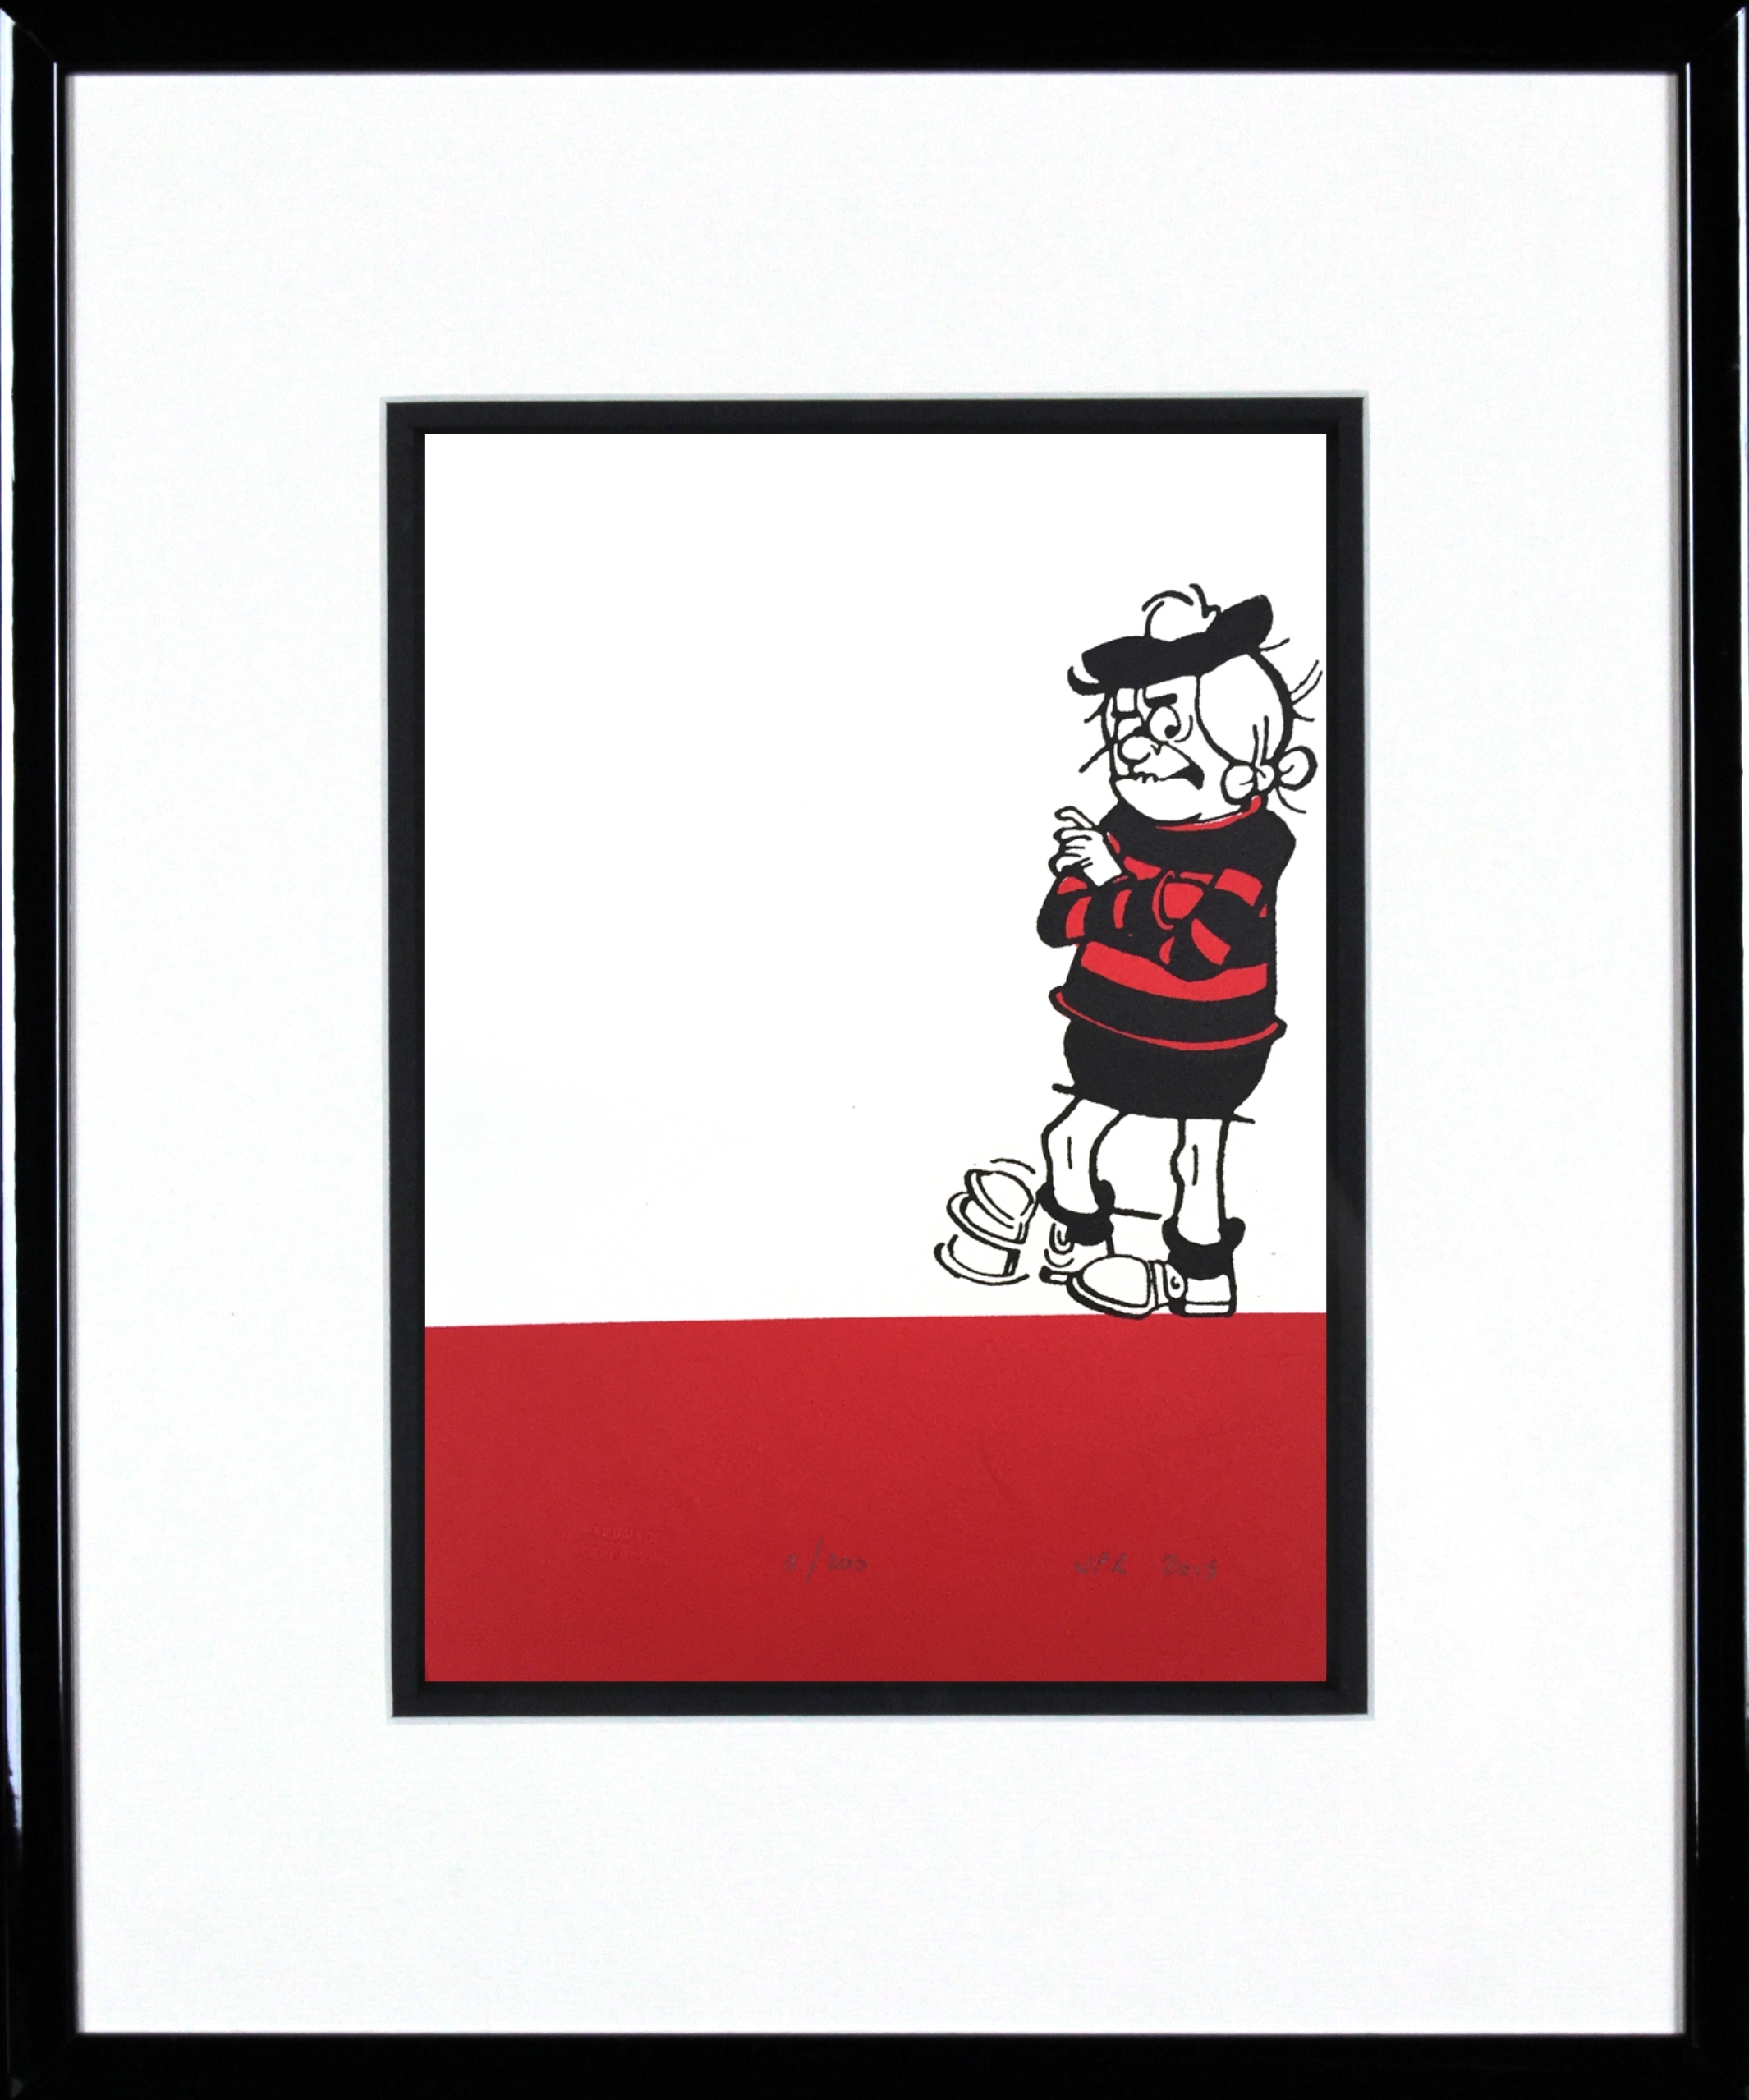 Minnie The Minx Taps Her Foot (Framed) – Eduardo Alessandro Studios Regarding Most Recent Framed Comic Art Prints (View 12 of 15)